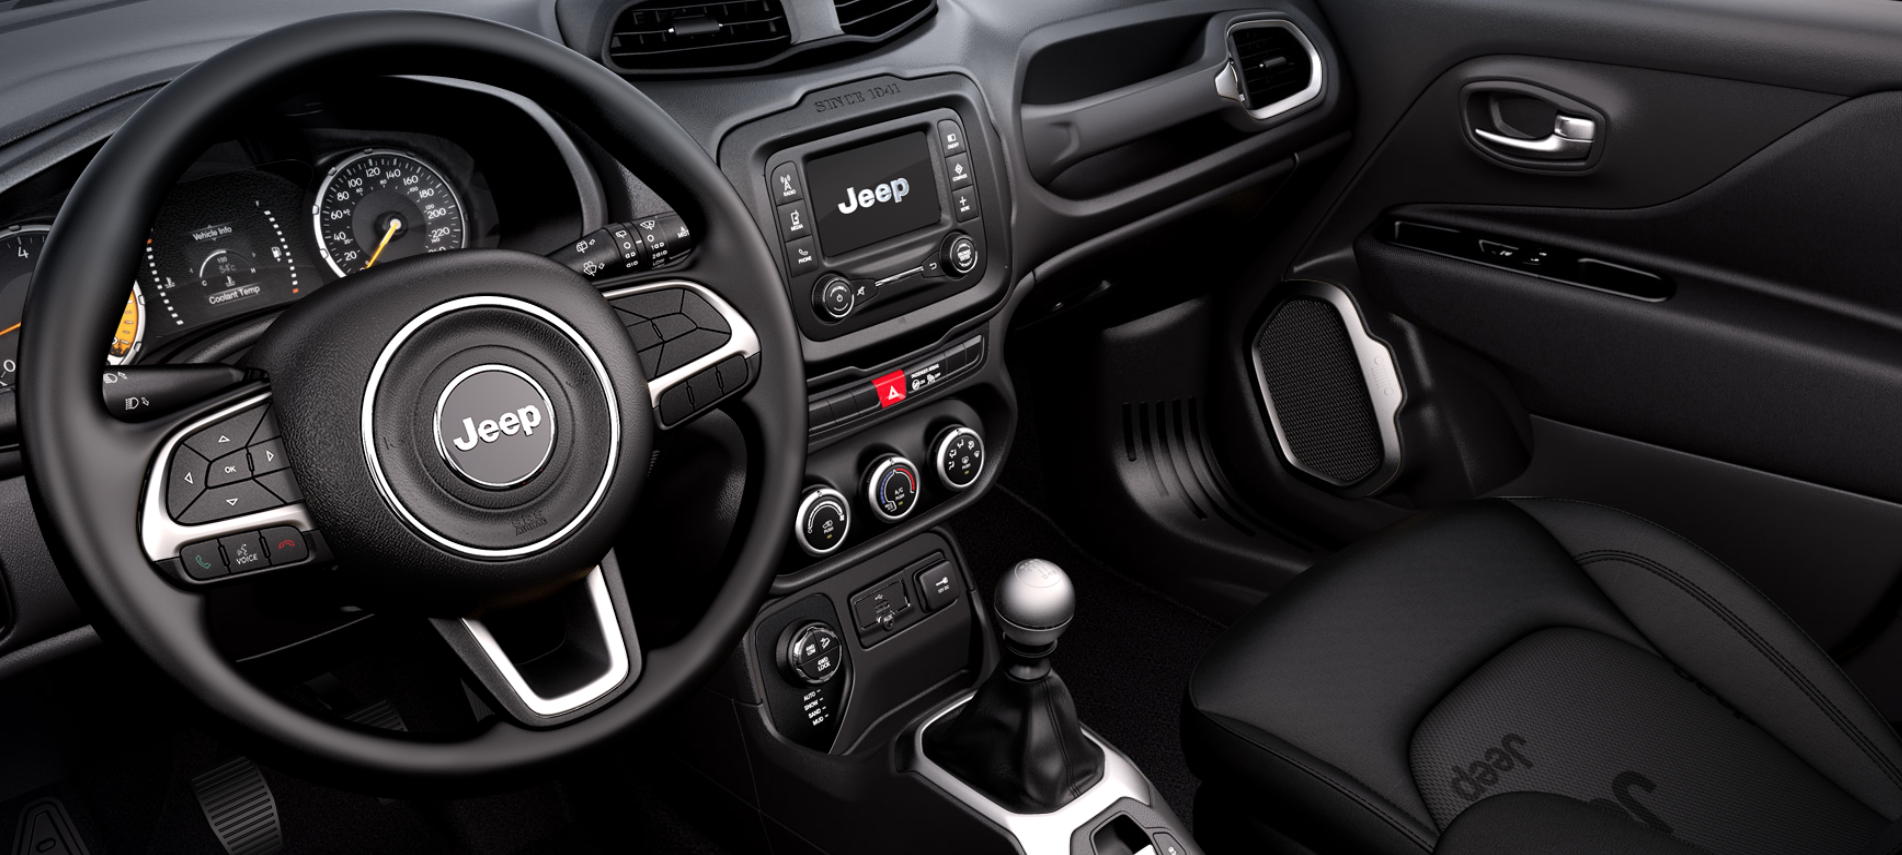 Jeep-Renegade-Sport-multijet-120-cv-5